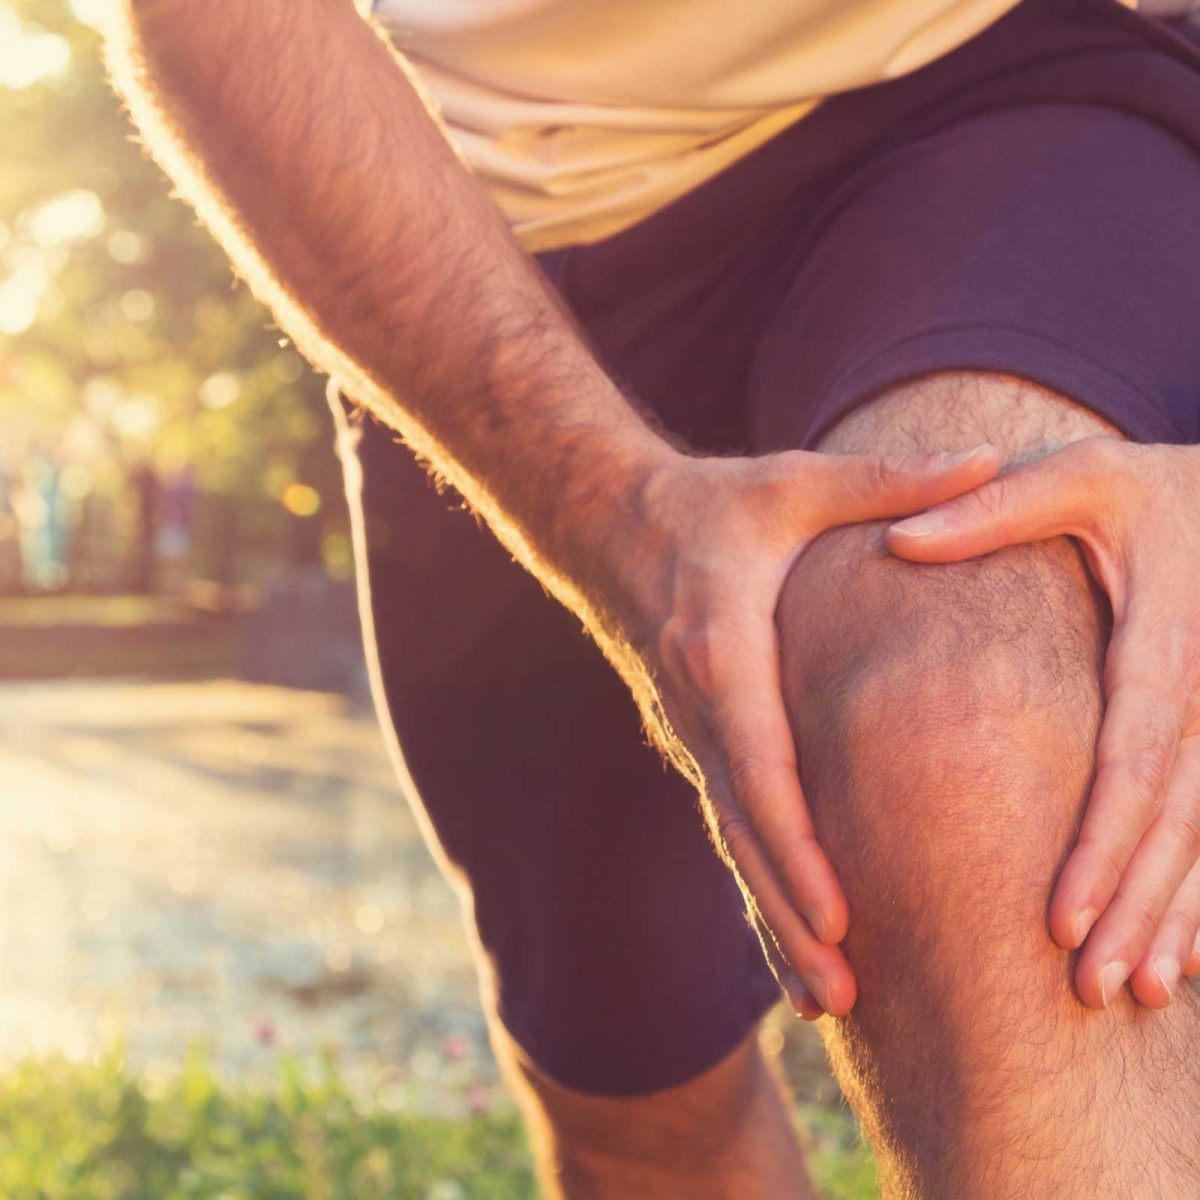 Types Of Leg Pain Causes You Should Never Ignore Readers Digest